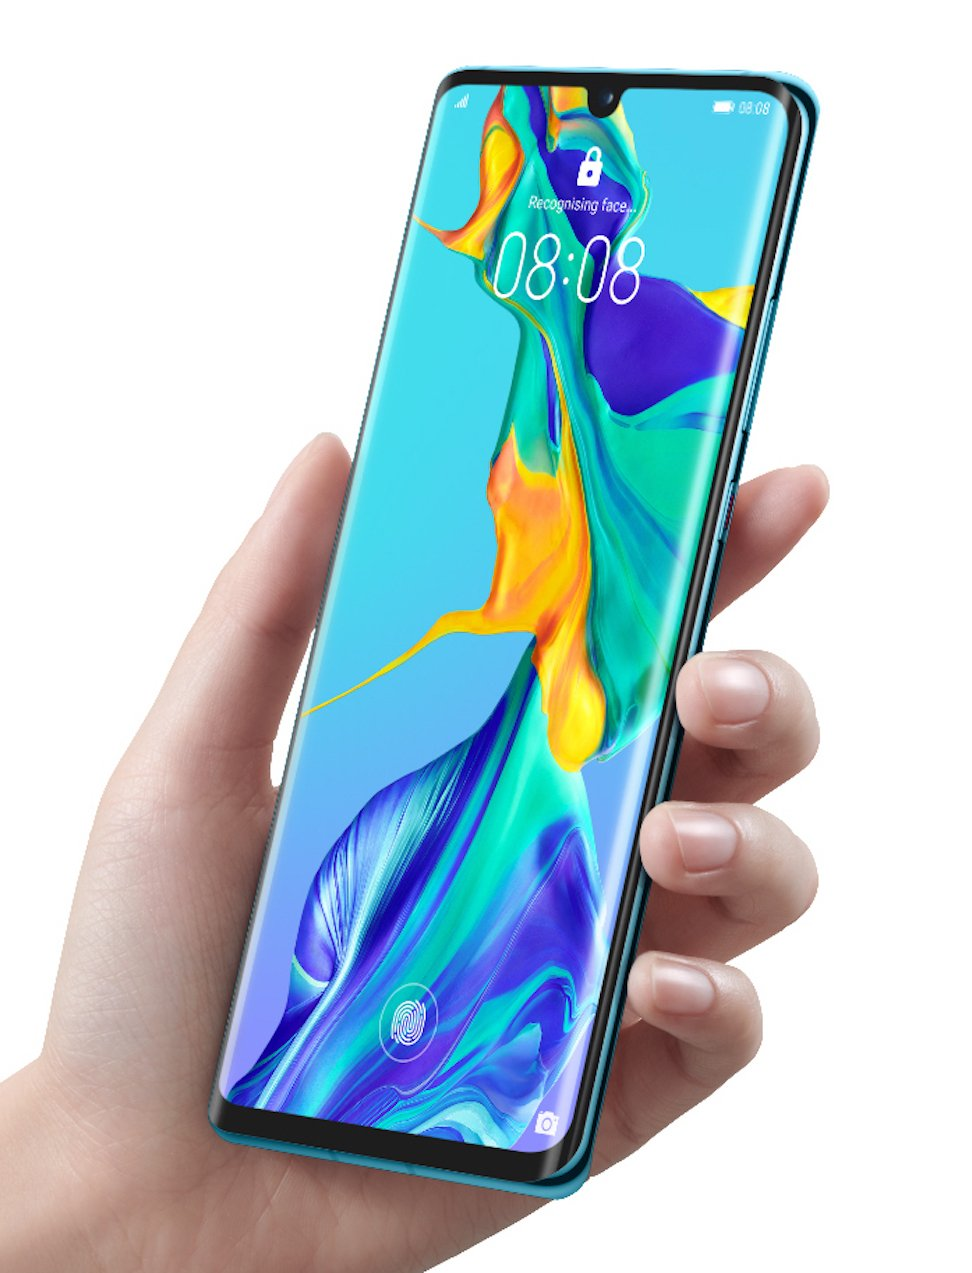 Huawei P30 Pro: Nifty camera tricks haven't made mobe mandatory over